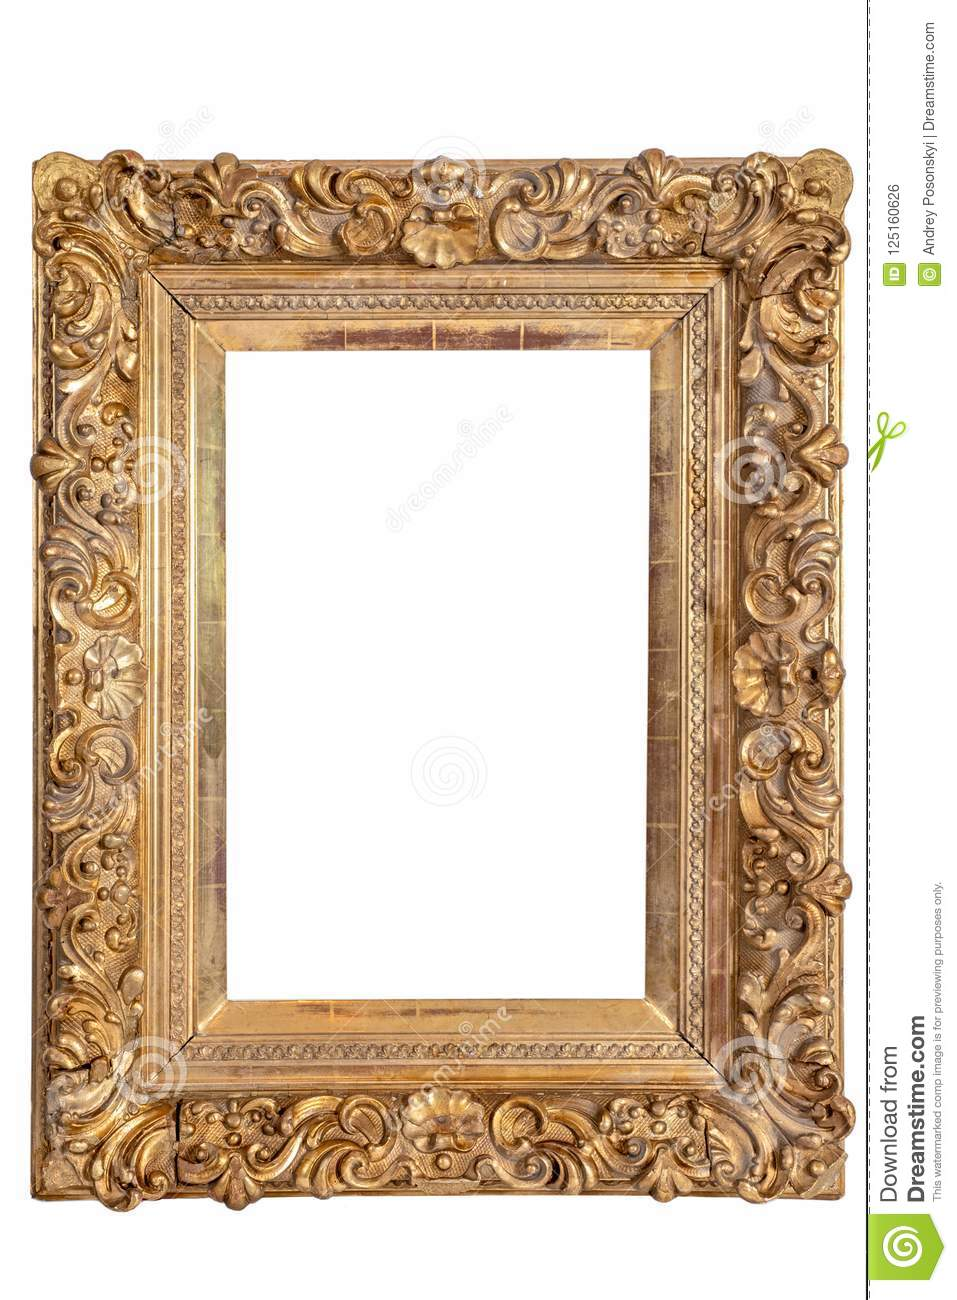 Wooden old picture frames stock photo. Image of decorative - 125160626